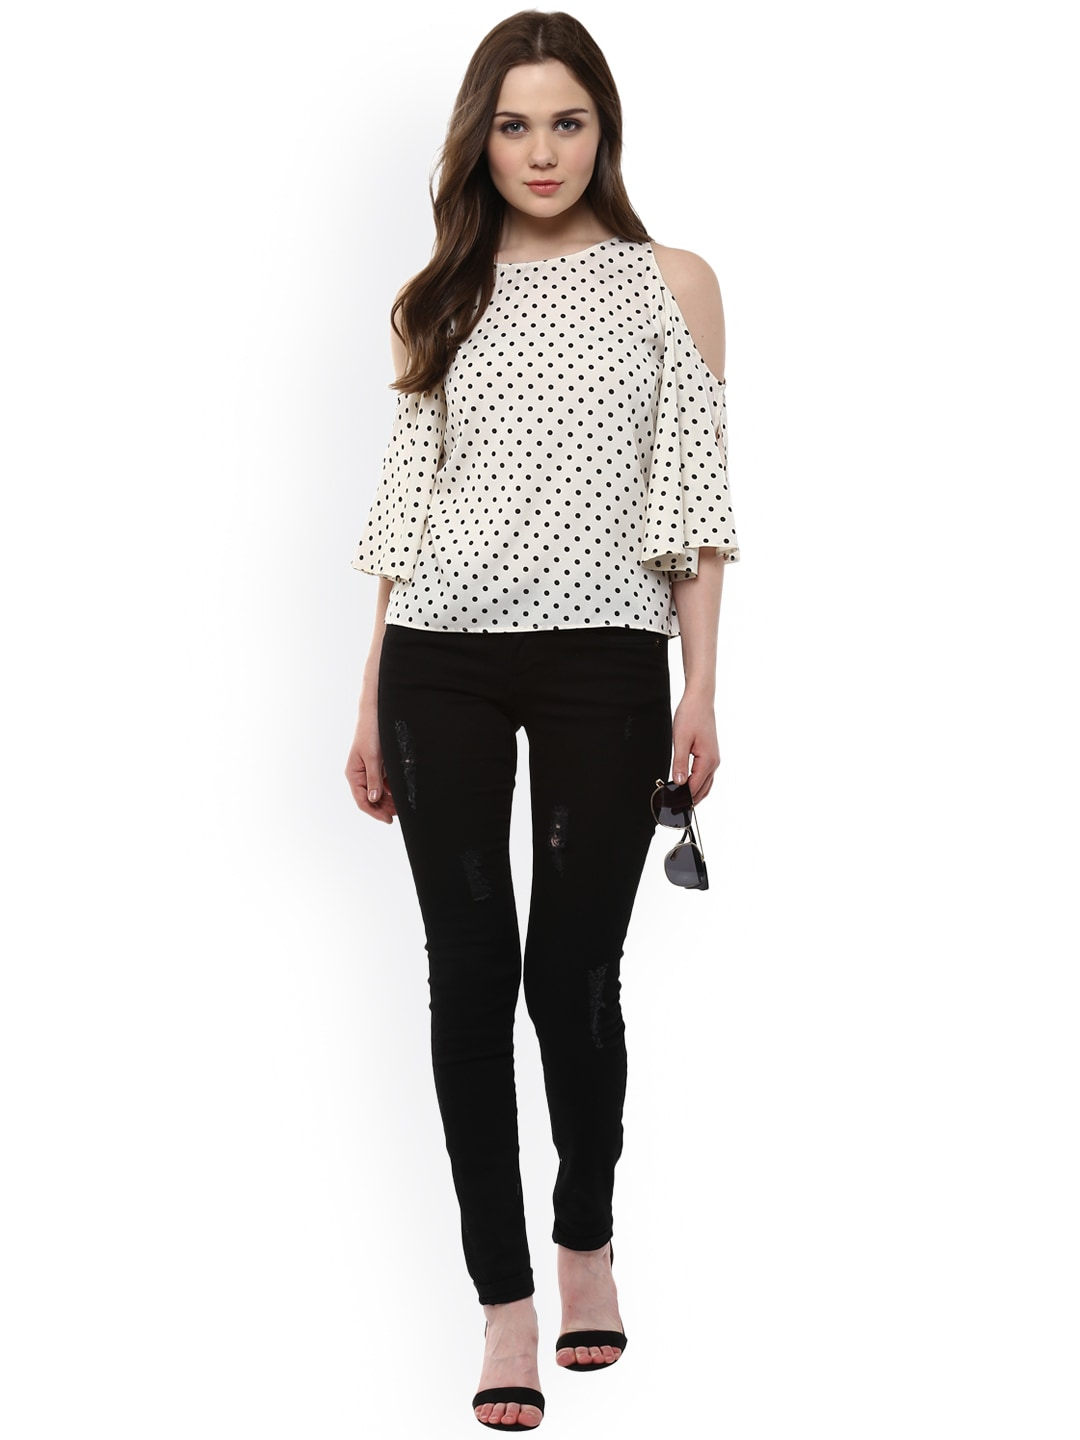 Women Polka Dot Tops - Buy Women Polka Dot Tops online in India